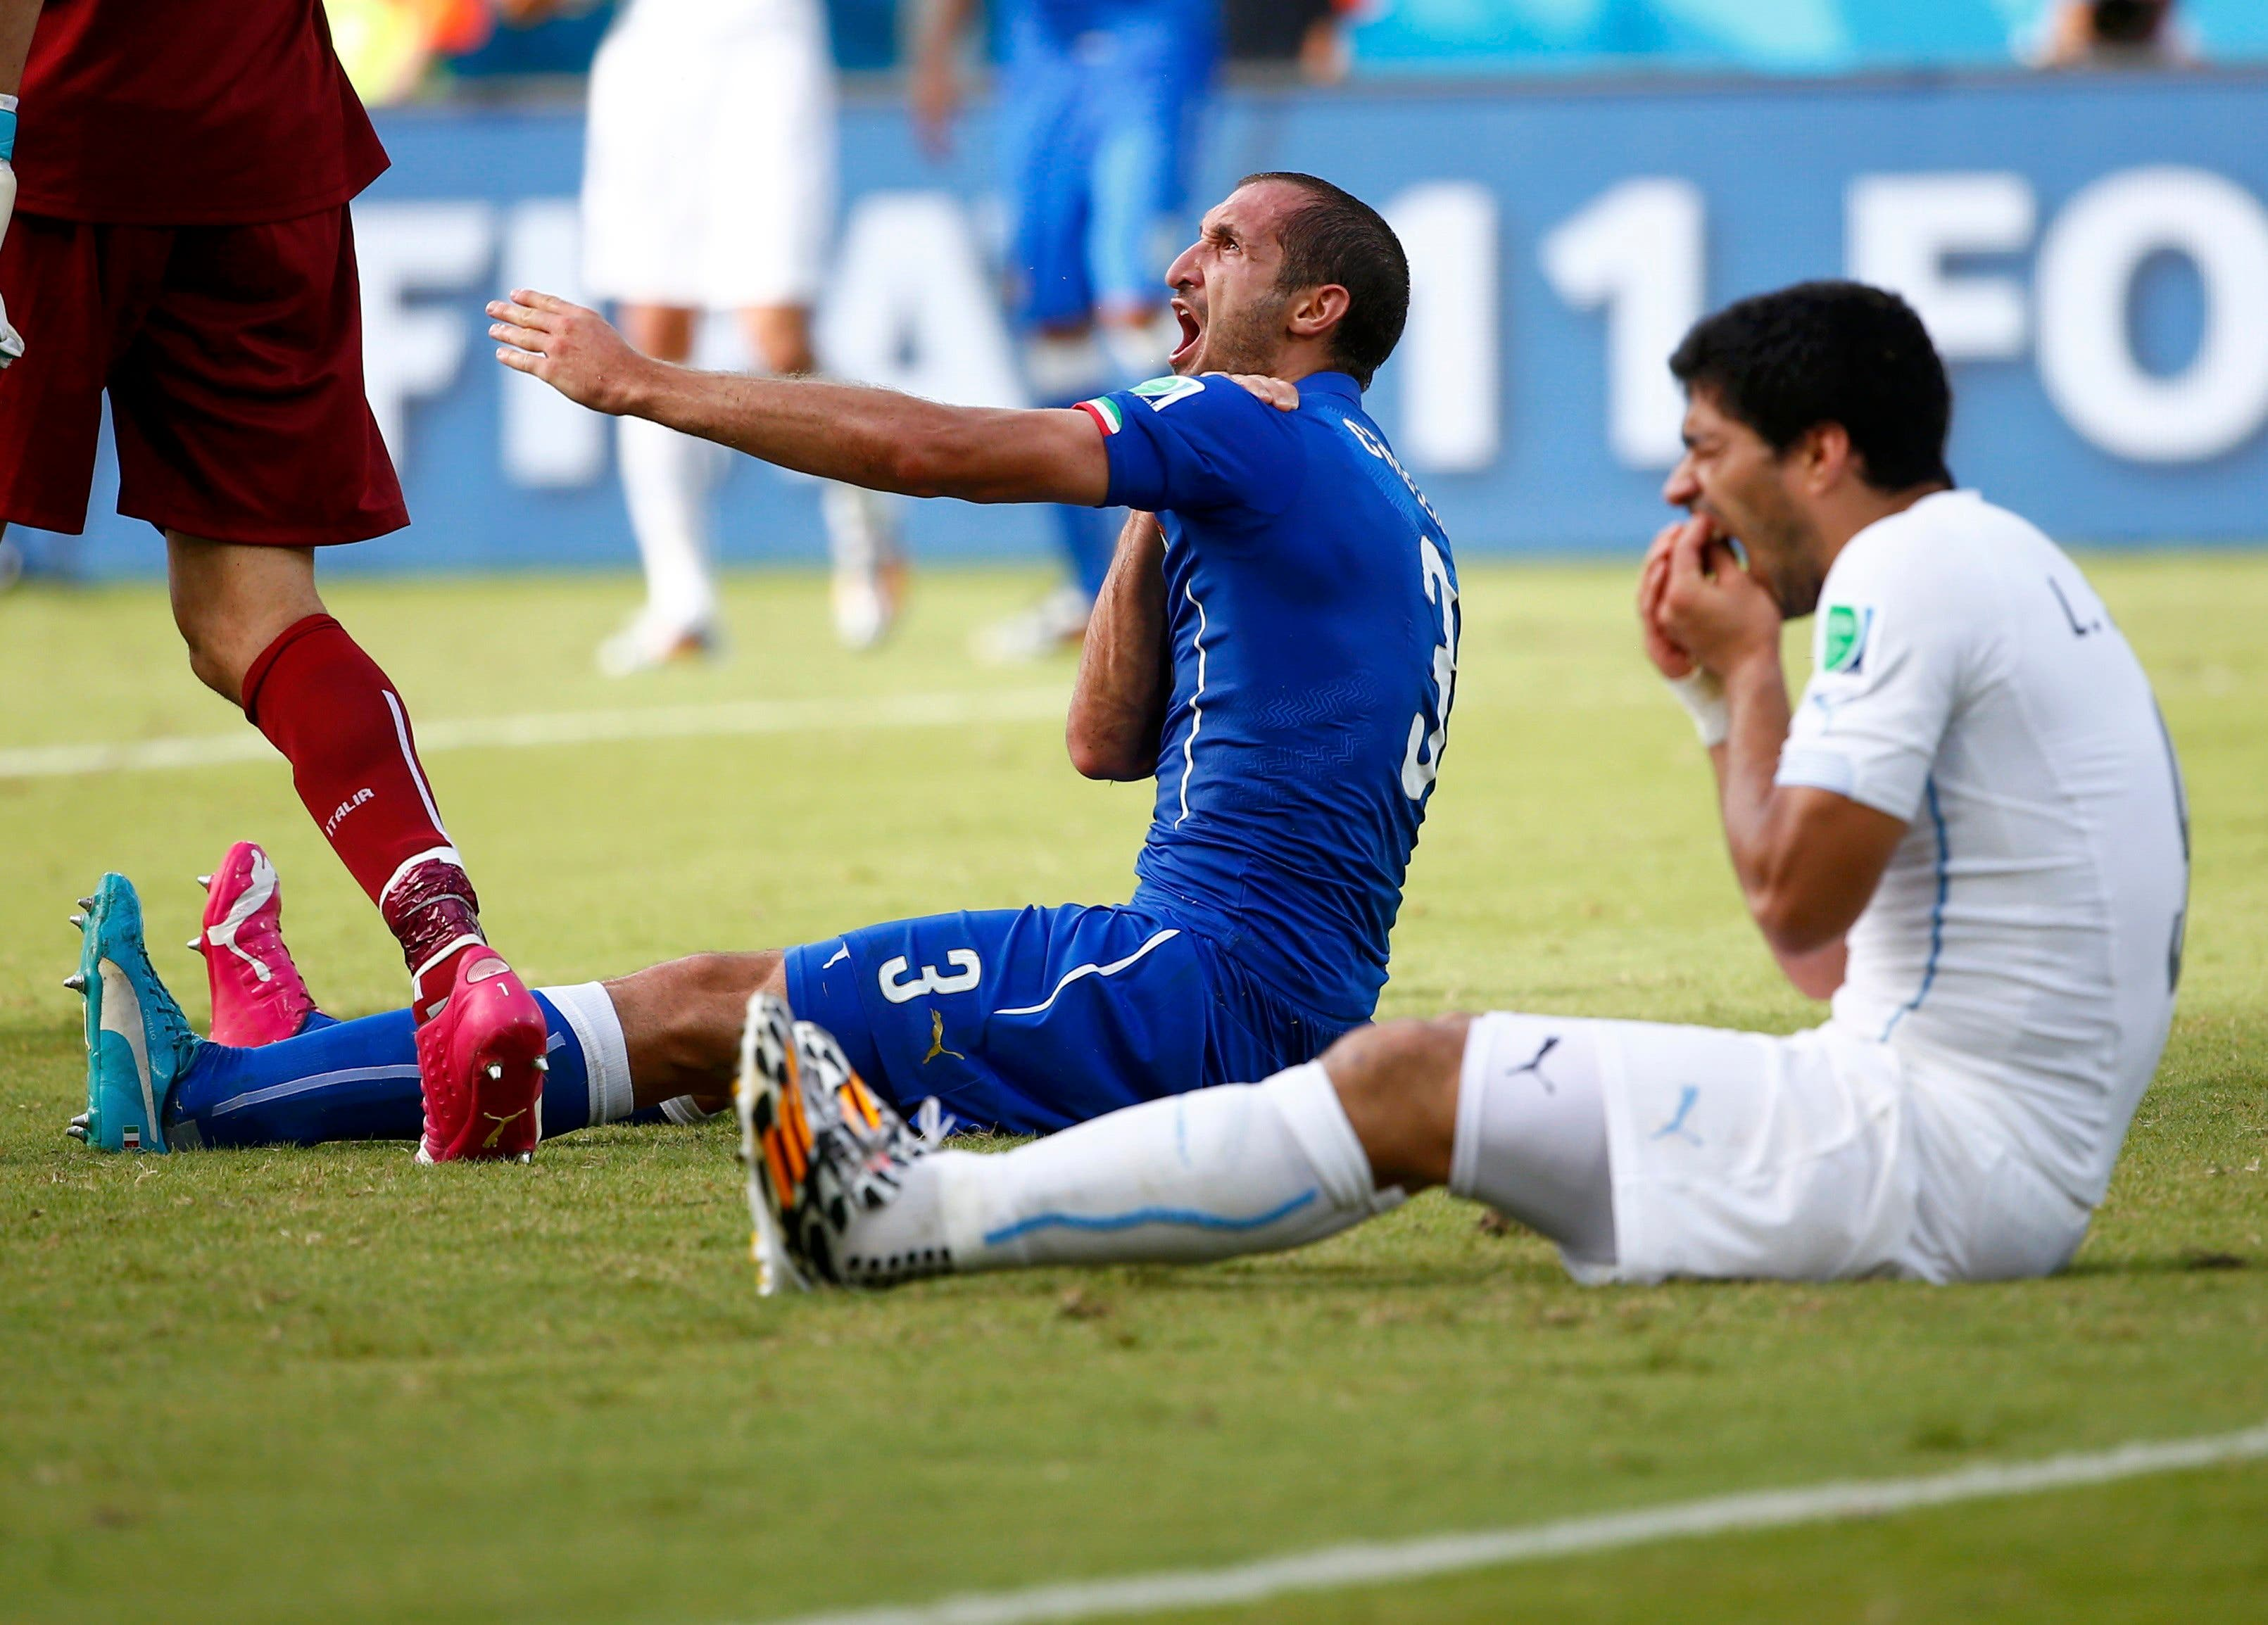 Uruguay's Luis Suarez (R) reacts after clashing with Italy's Giorgio Chiellini during their 2014 World Cup Group D soccer match at the Dunas arena in Natal June 24, 2014. reuters